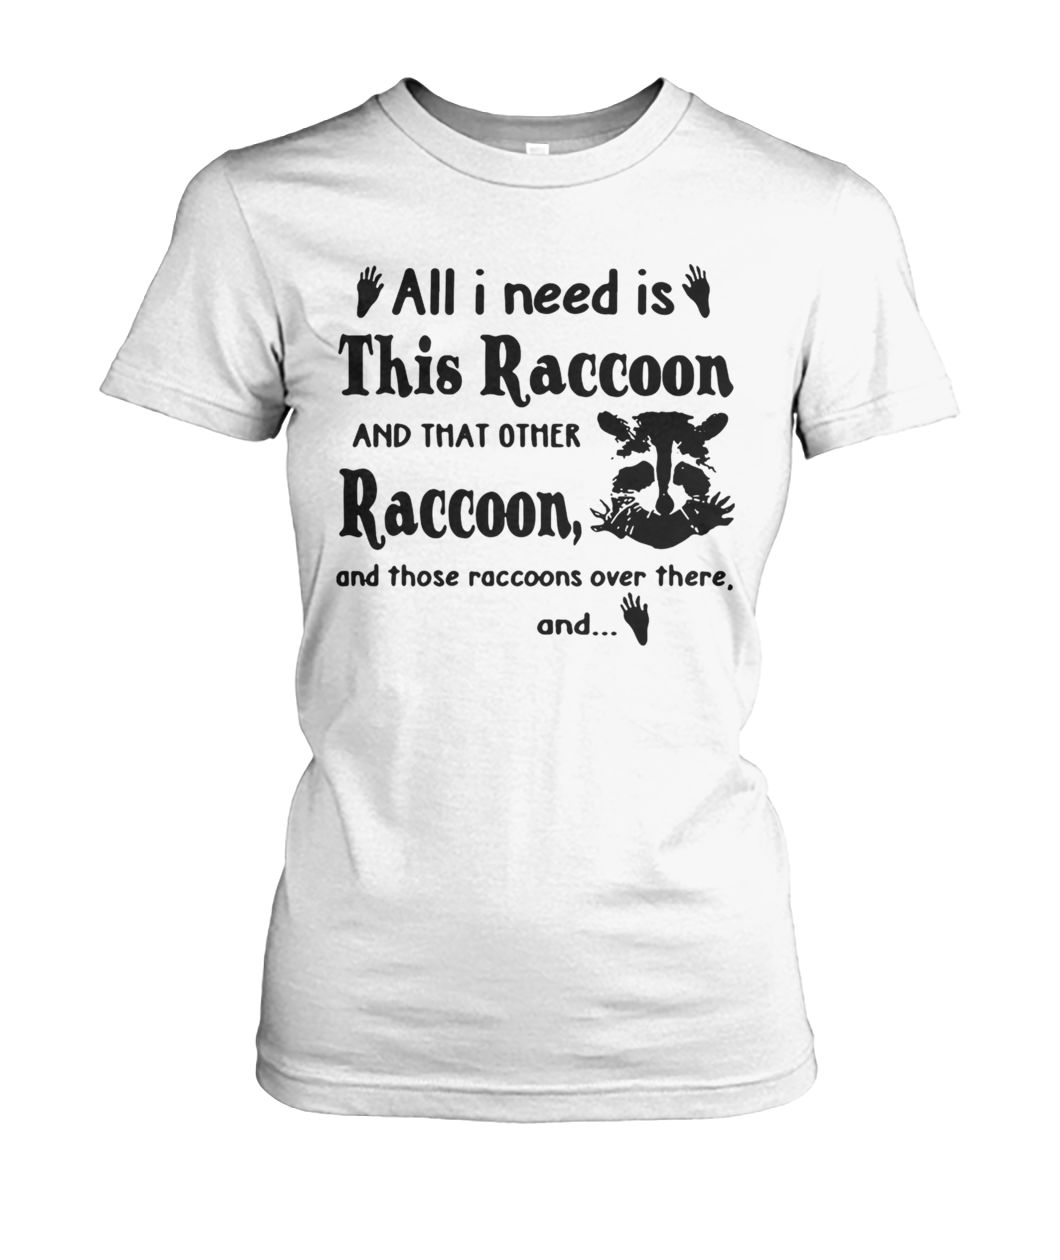 All I need is this raccoon and that other raccoon and those raccoons over there and women's crew tee